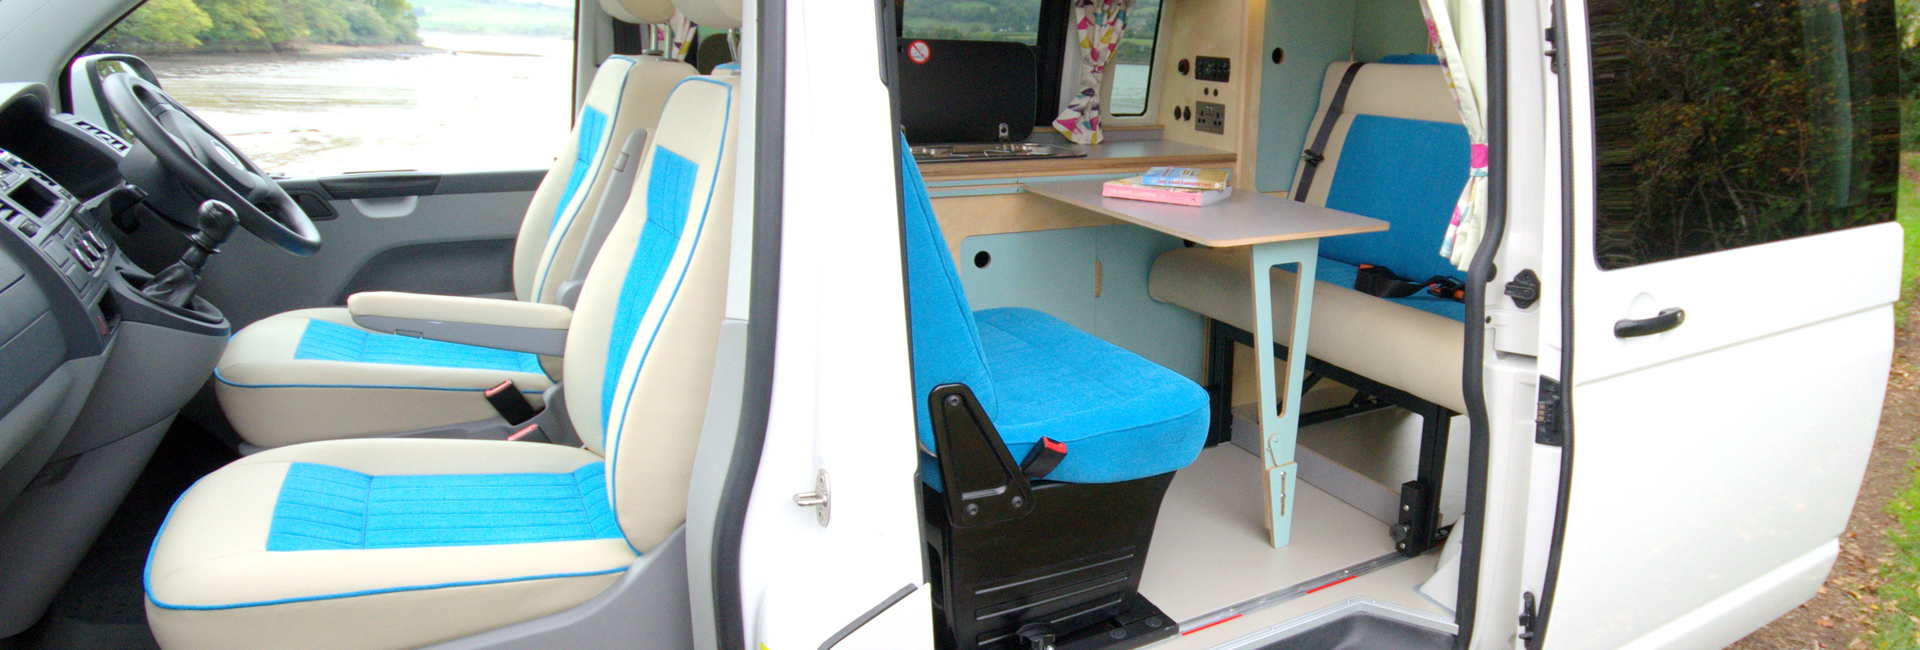 cool campervan conversion with white and blue seats, eco plywood units in light blue and clever fold away table